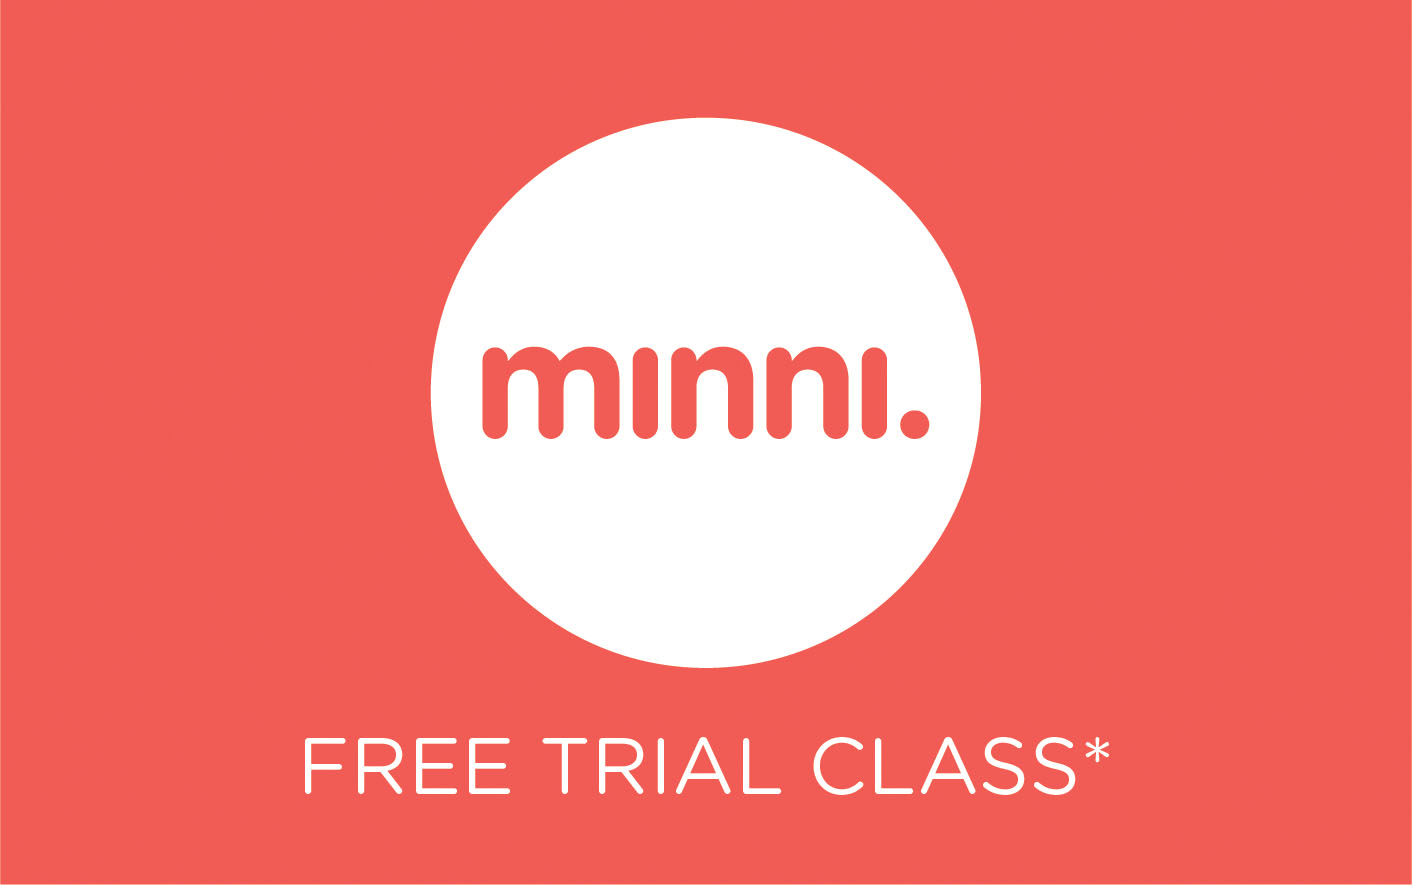 New to Minni? Try a class for free.